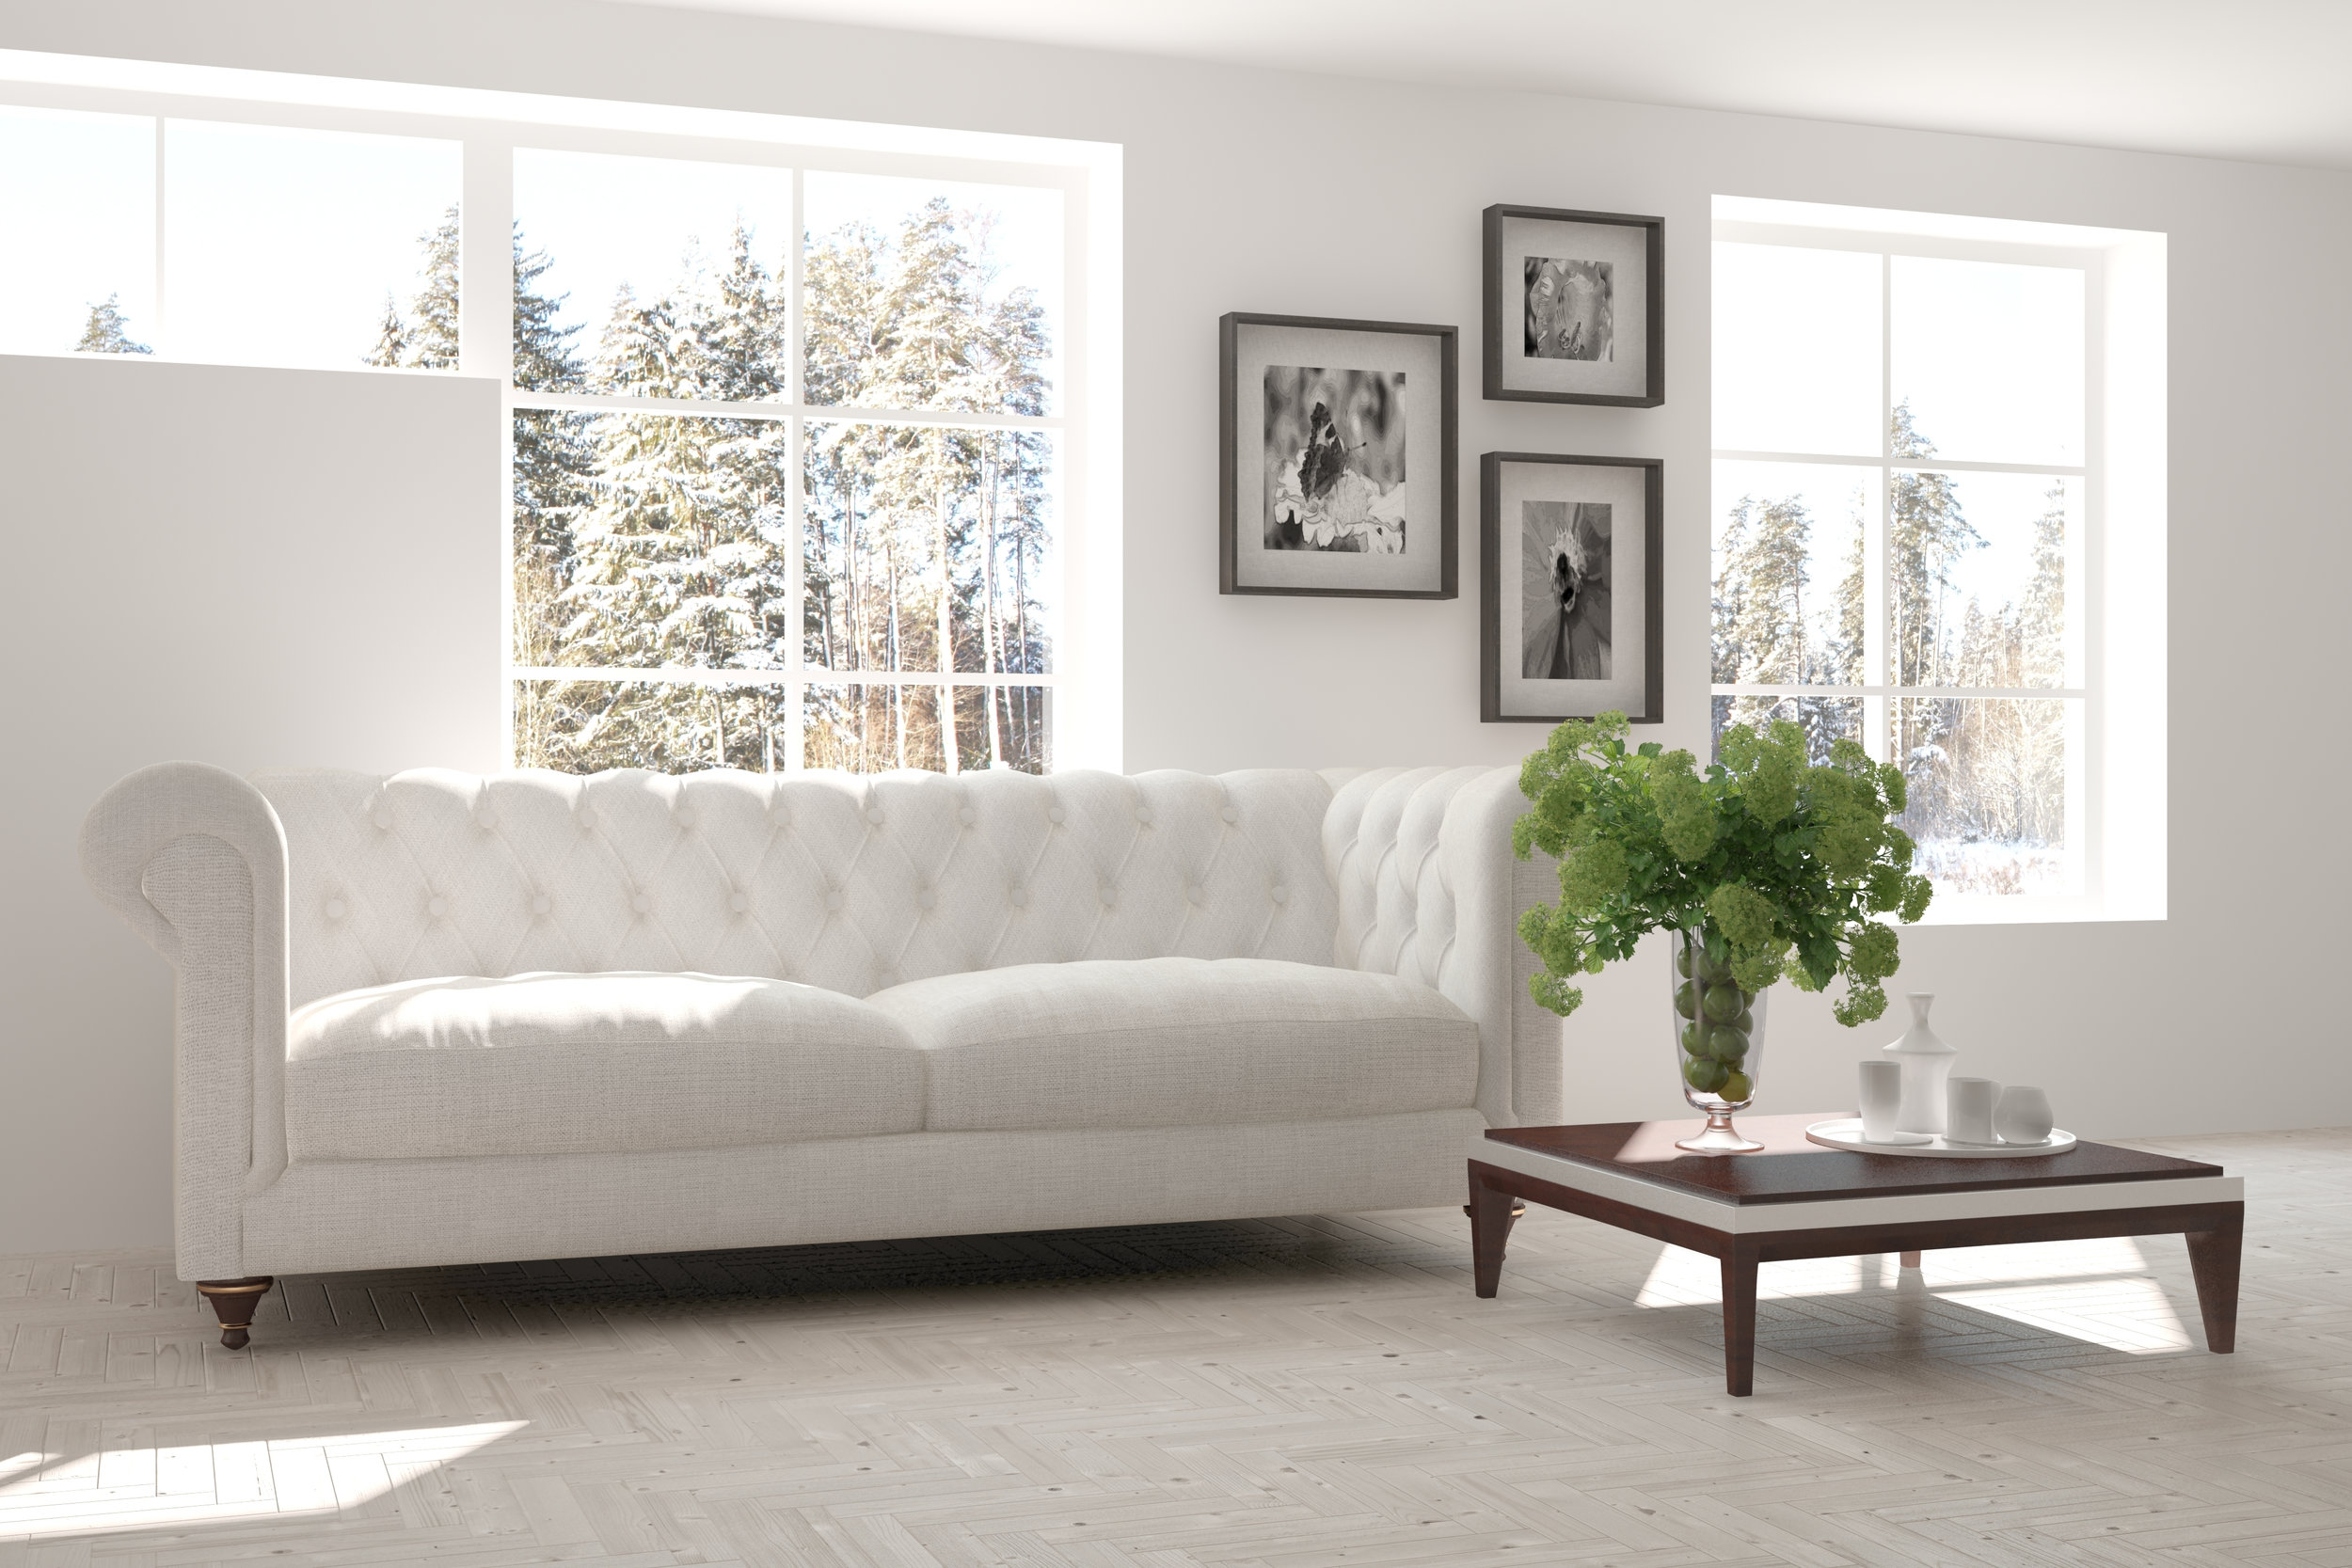 beautiful classic white - This beautiful living room is a wonderful example of elegant minimalism.